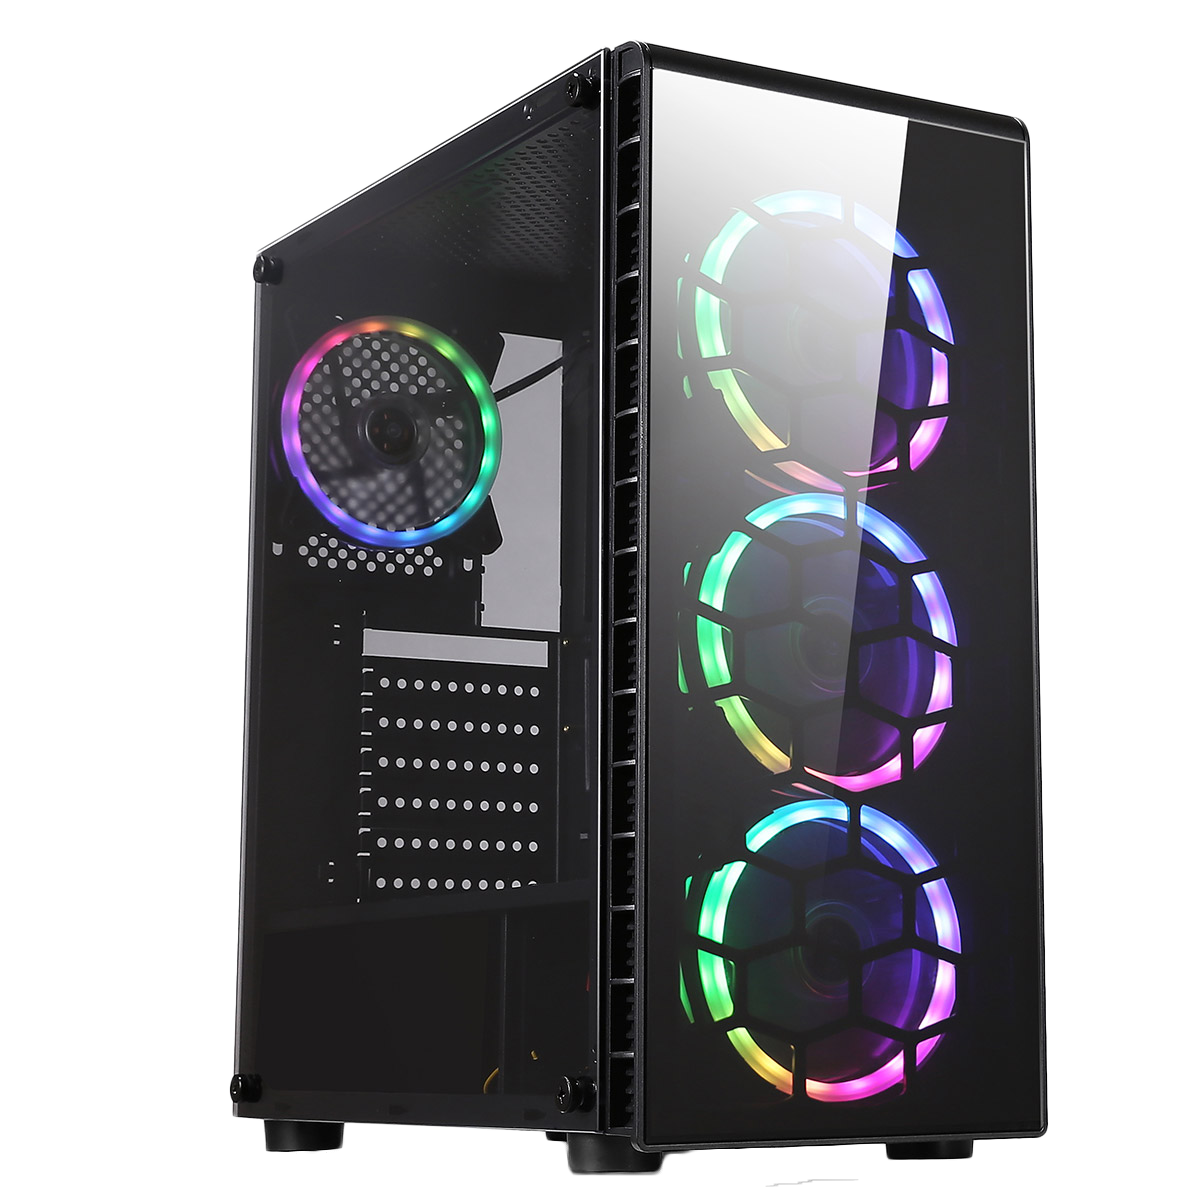 HST Raider i5 Quad Core 8GB RAM 500GB GT710 NVIDIA Customisable Gaming PC